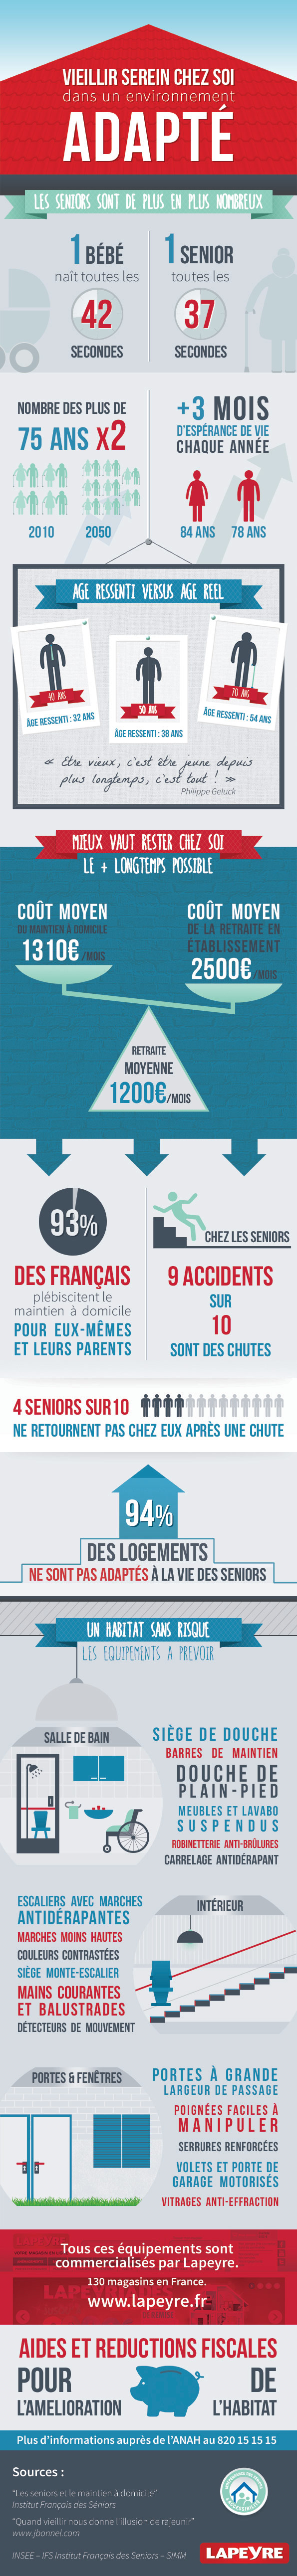 infographie lapeyre